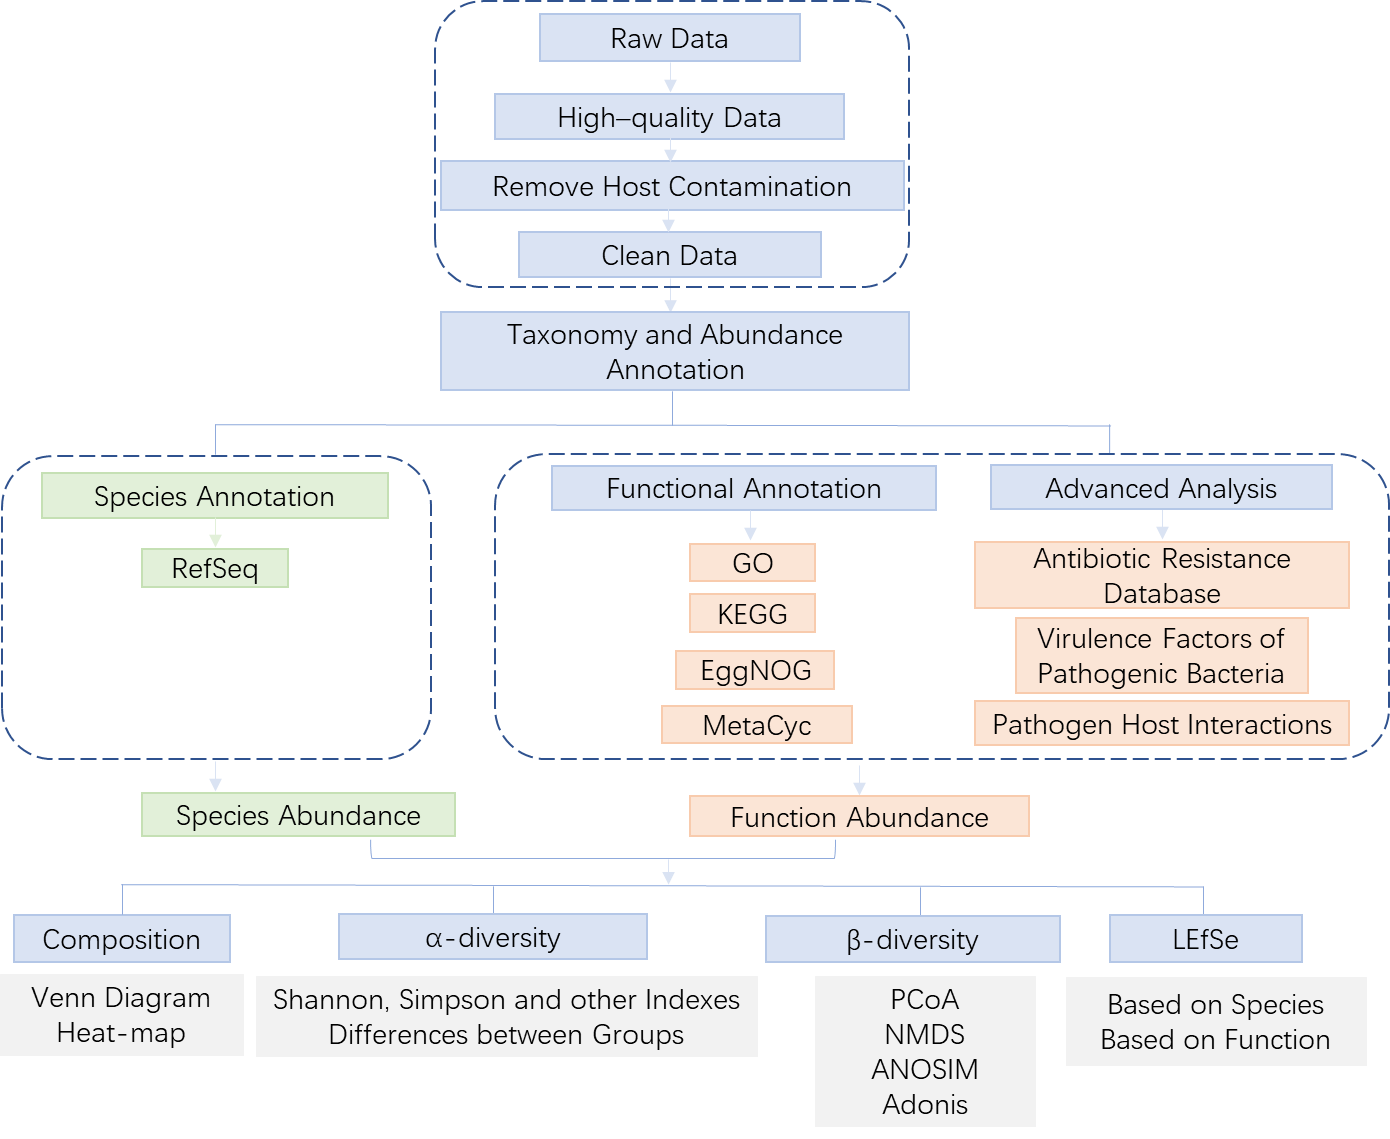 Bioinformatics Analysis Workflow